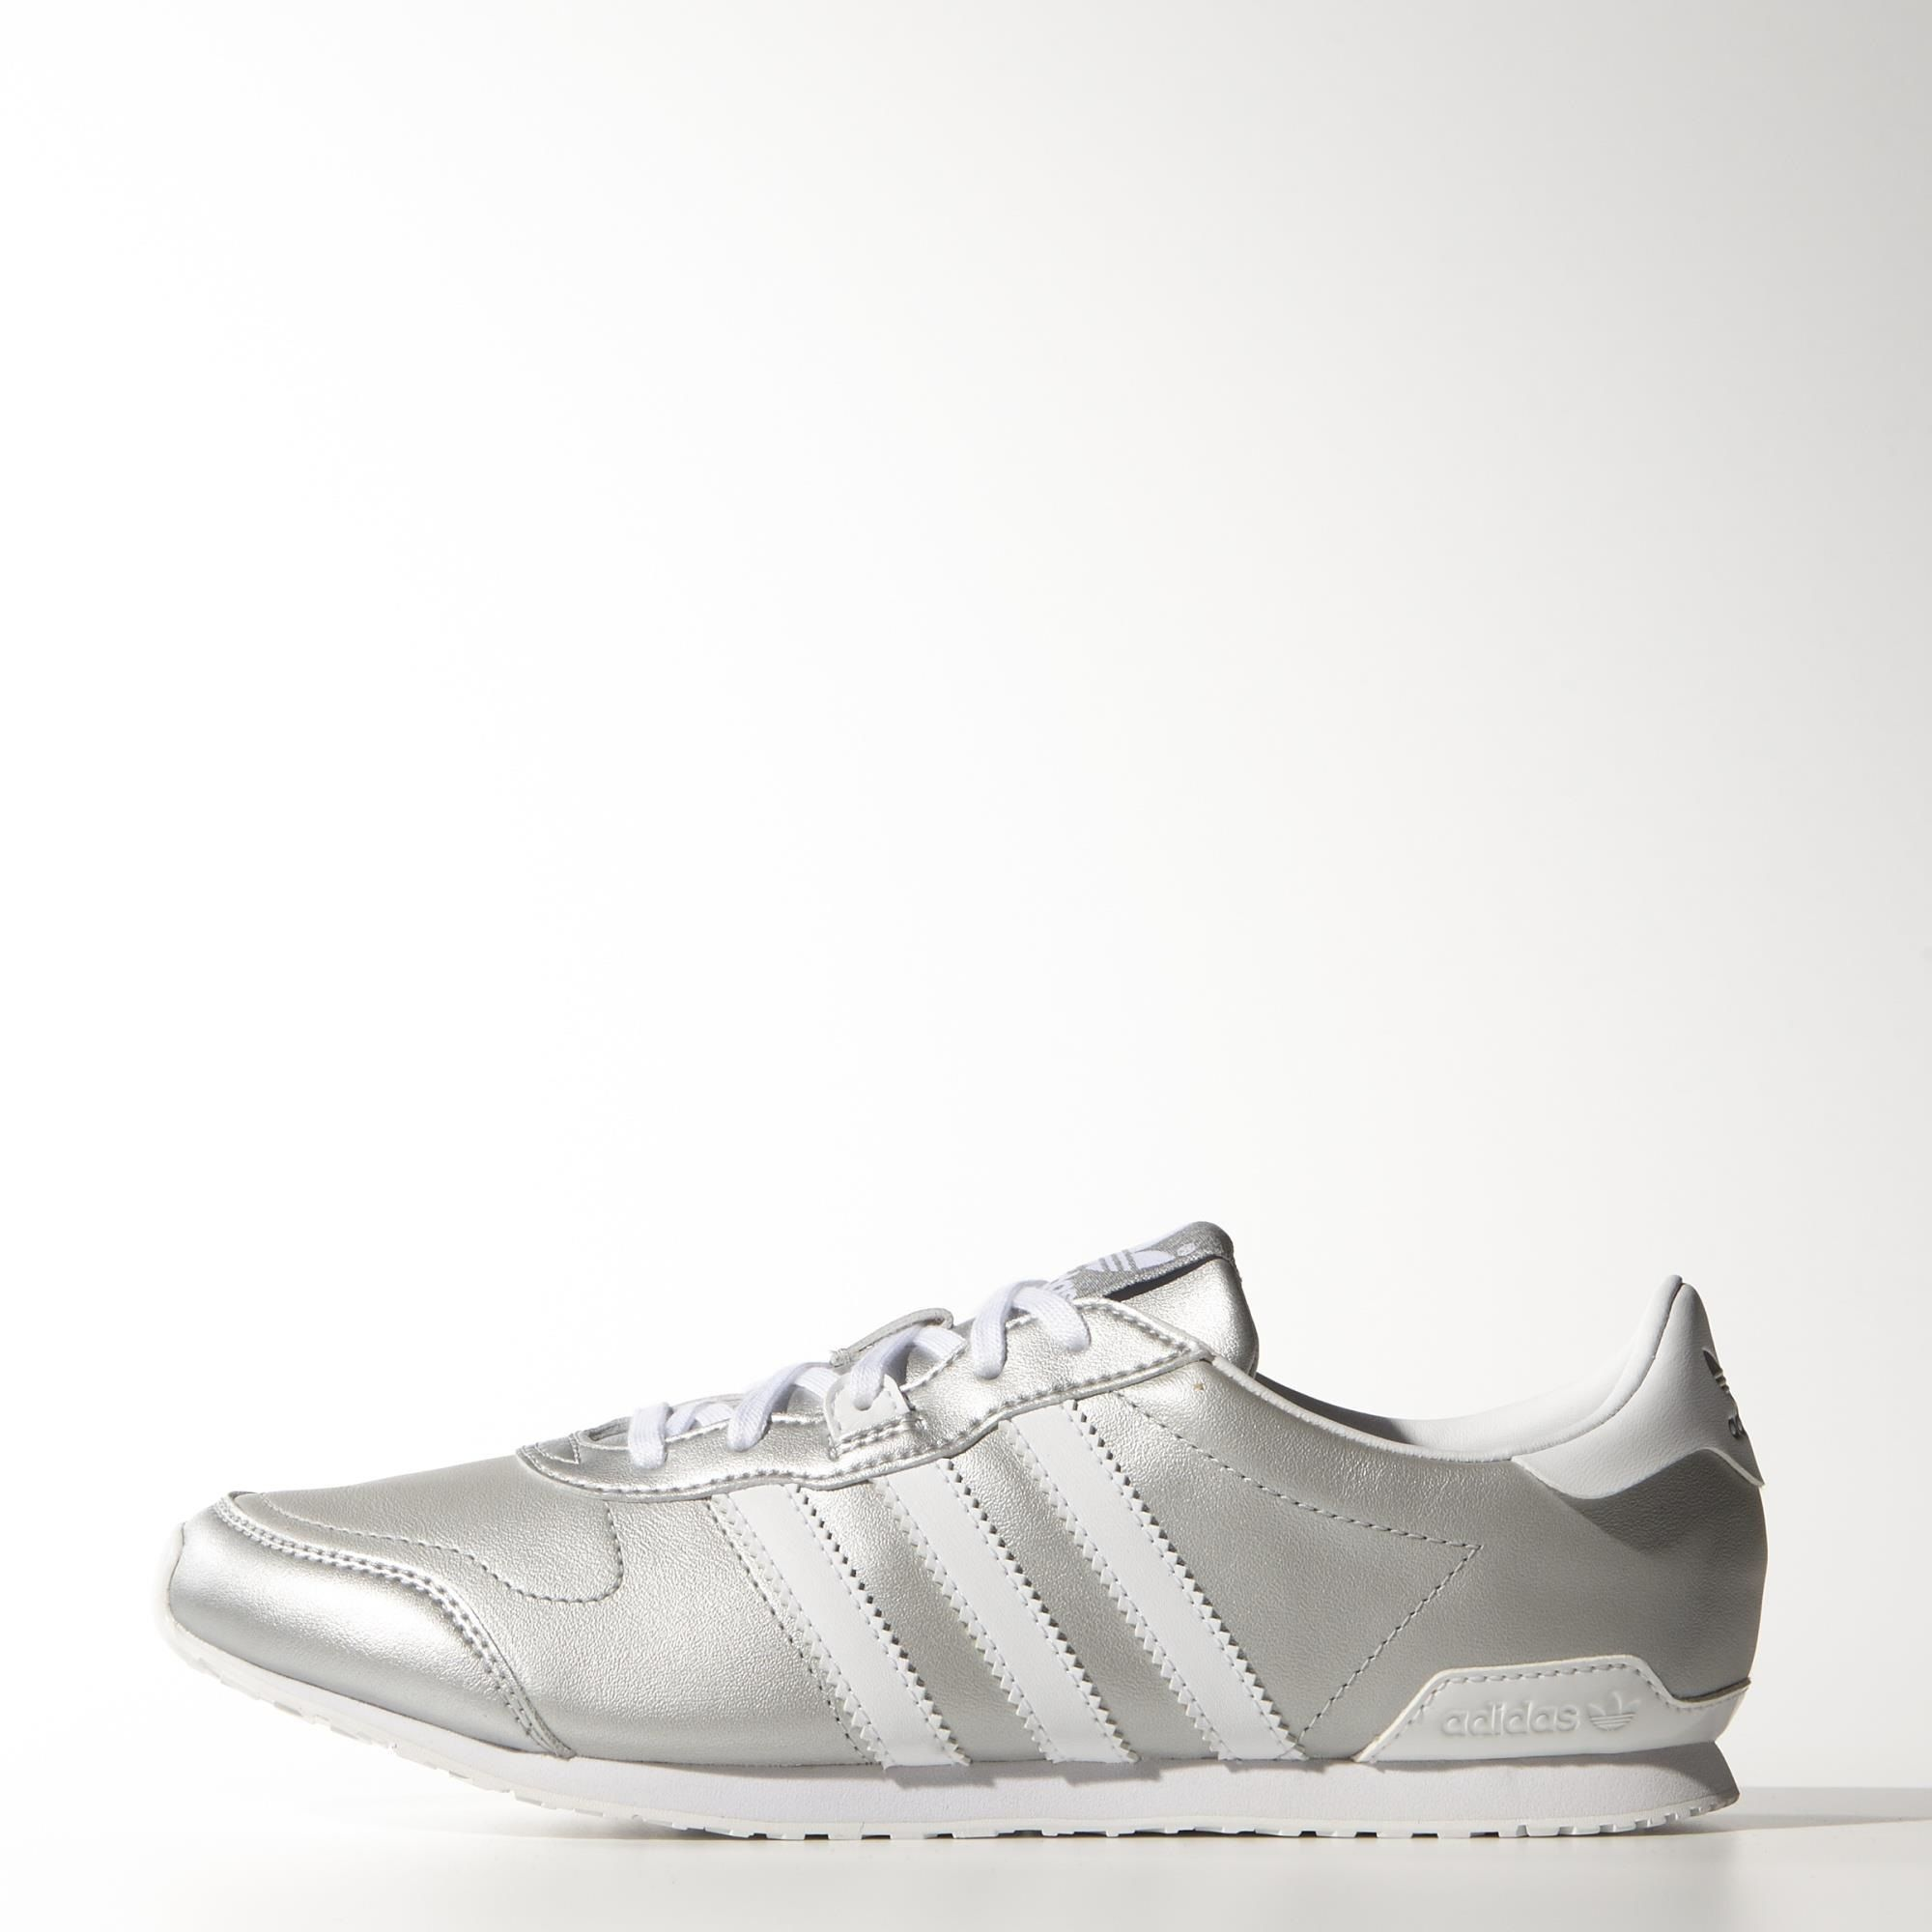 adidas zx 700 be low